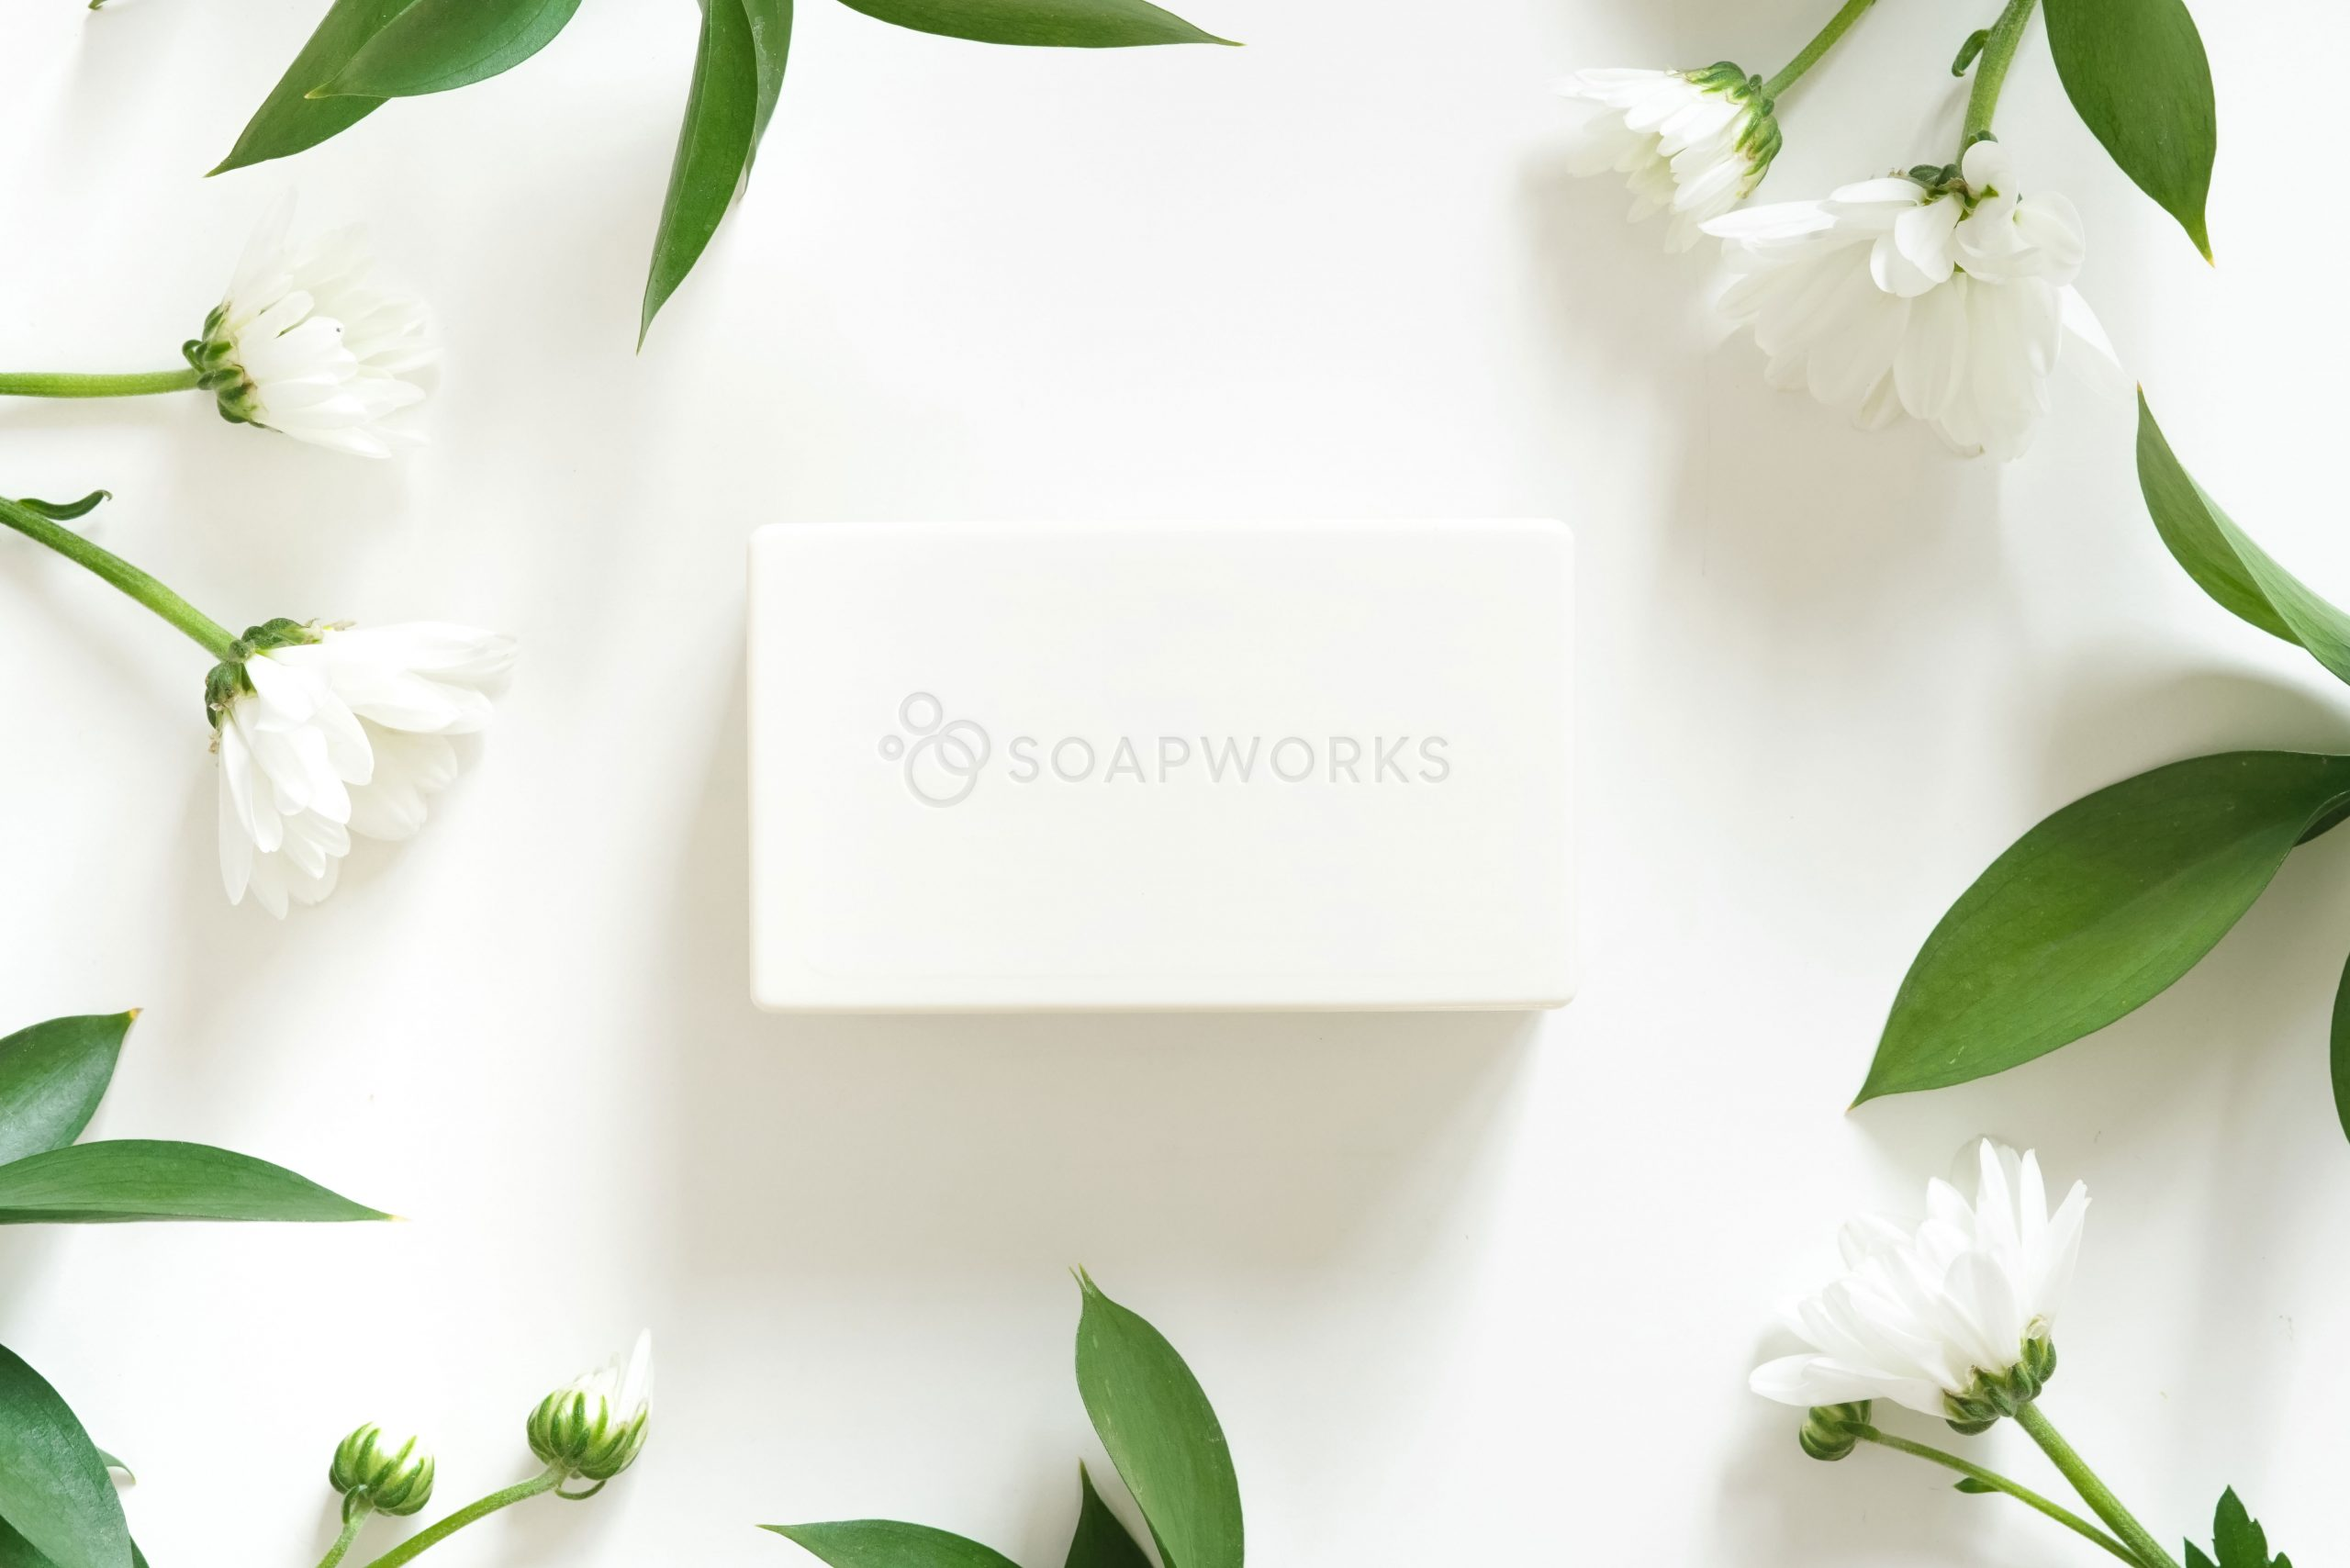 Bar soap with flowers on a white background